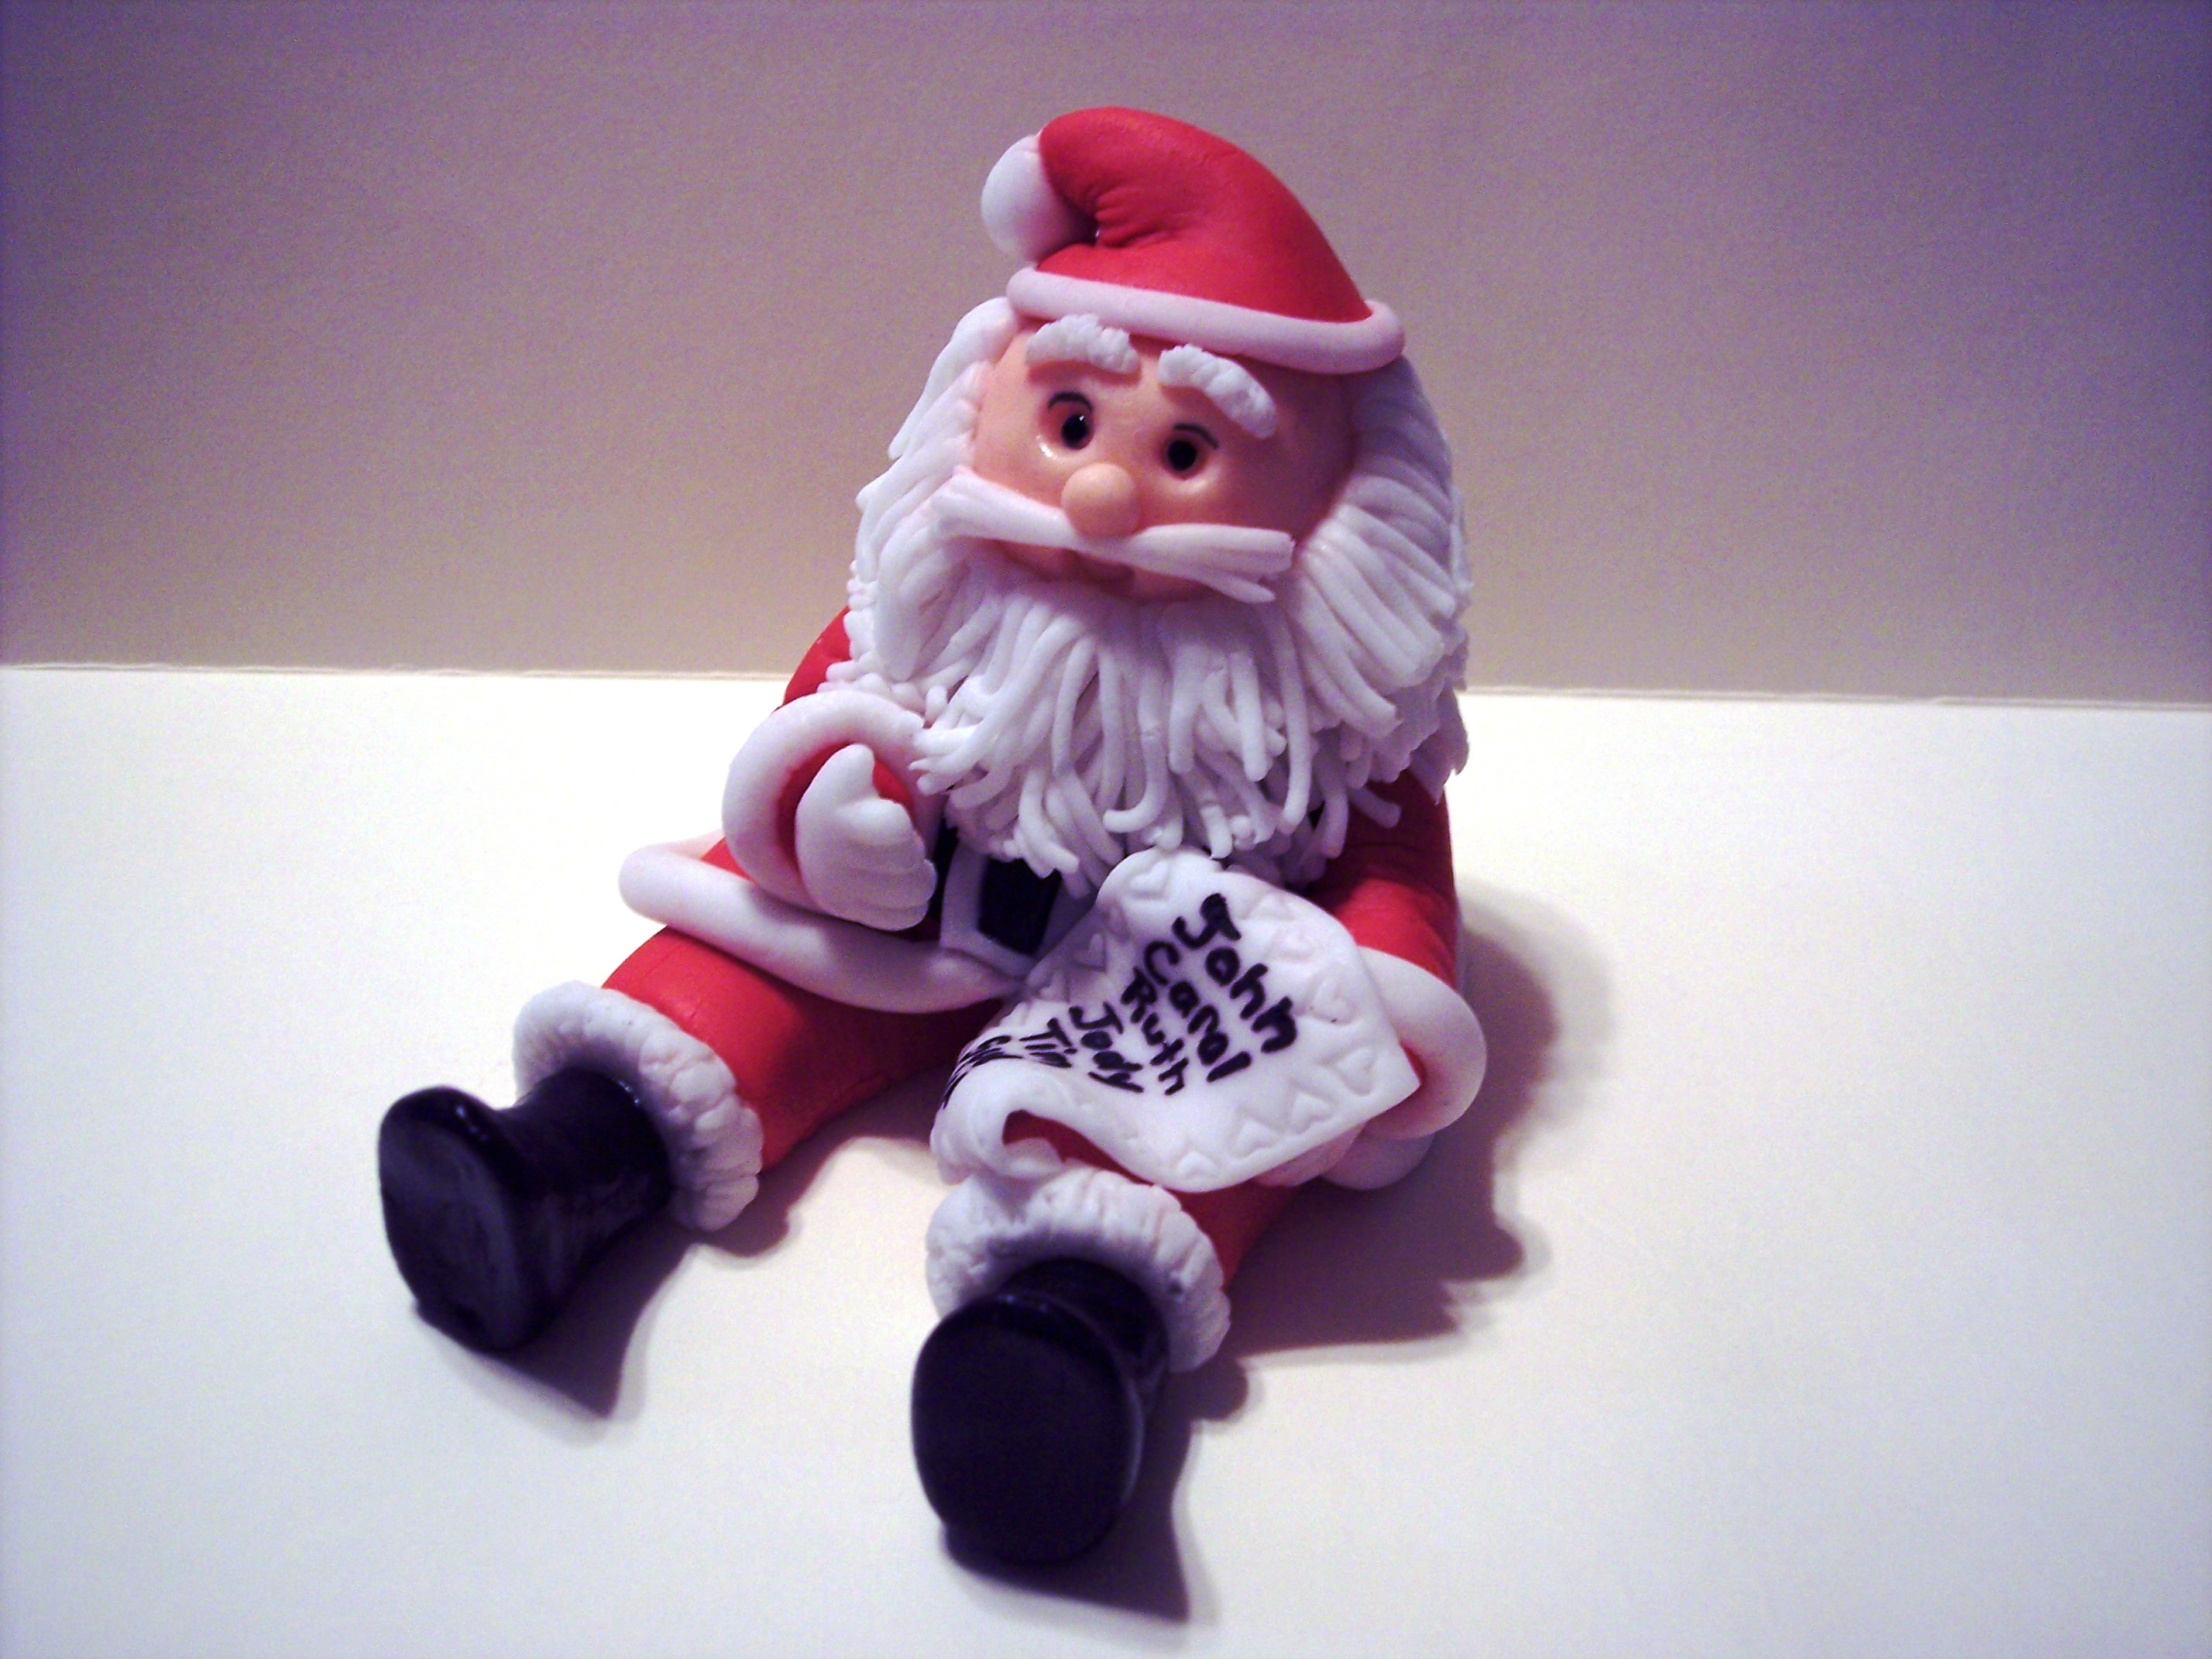 How to make a father christmas cake decoration - Gumpaste Santa Cake Topper